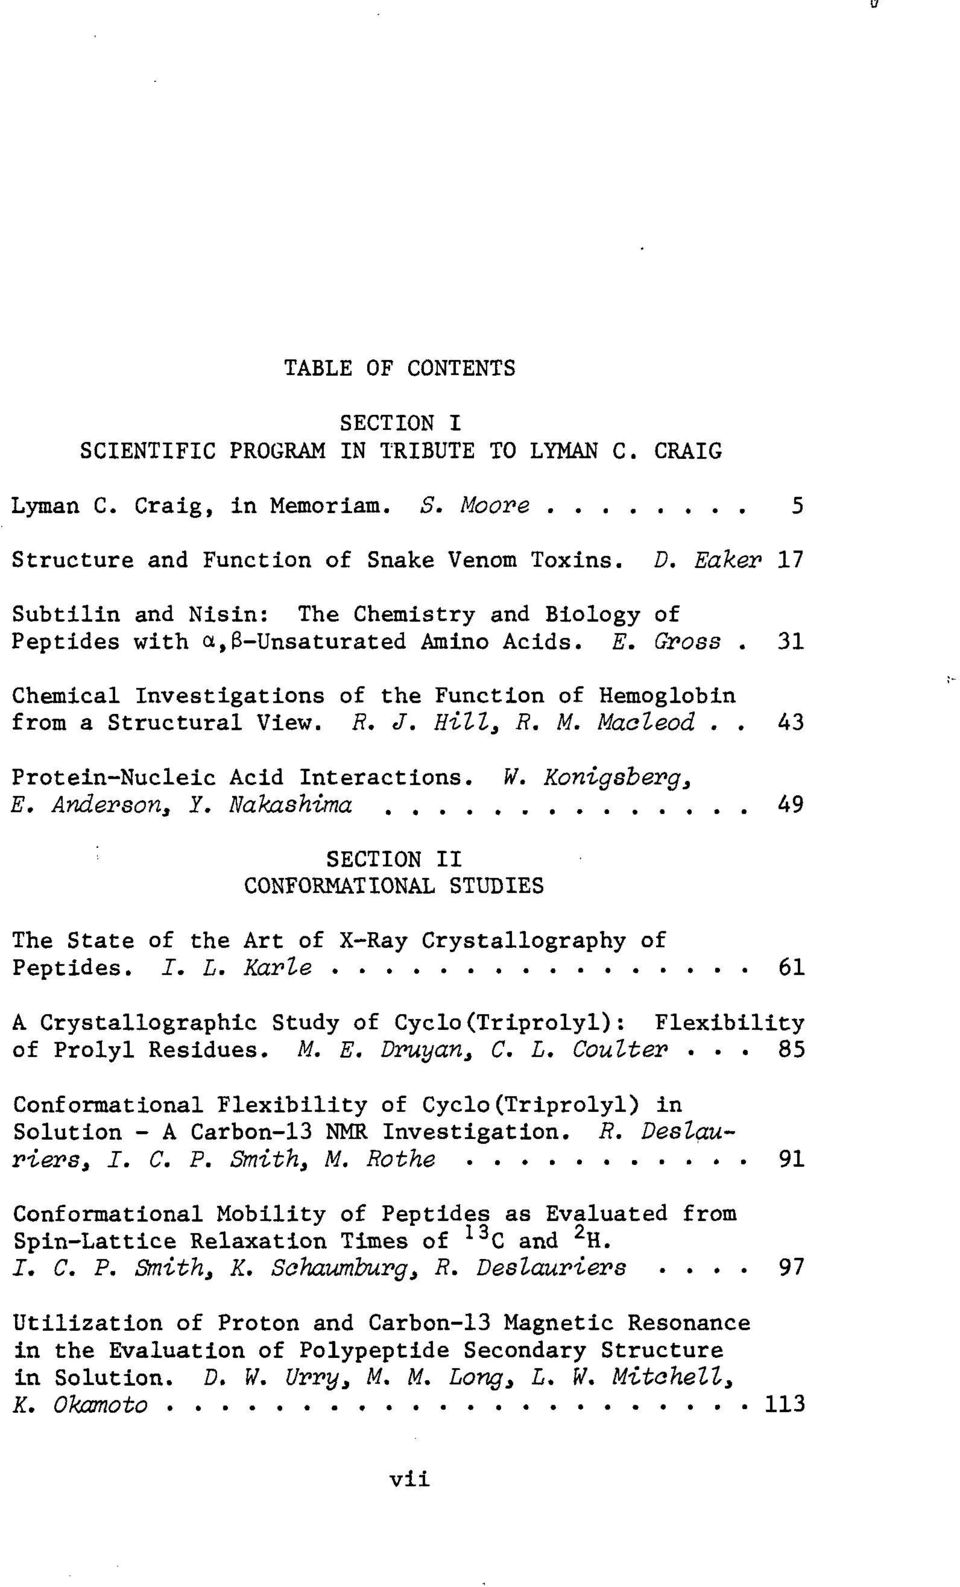 Hill, R. M. Macleod.. 43 Protein-Nucleic Acid Interactions. W. Konigsberg, E. Anderson, Y. Nahxshima 49 ; SECTION II CONFORMATIONAL STUDIES The State of the Art of X-Ray Crystallography of Peptides.